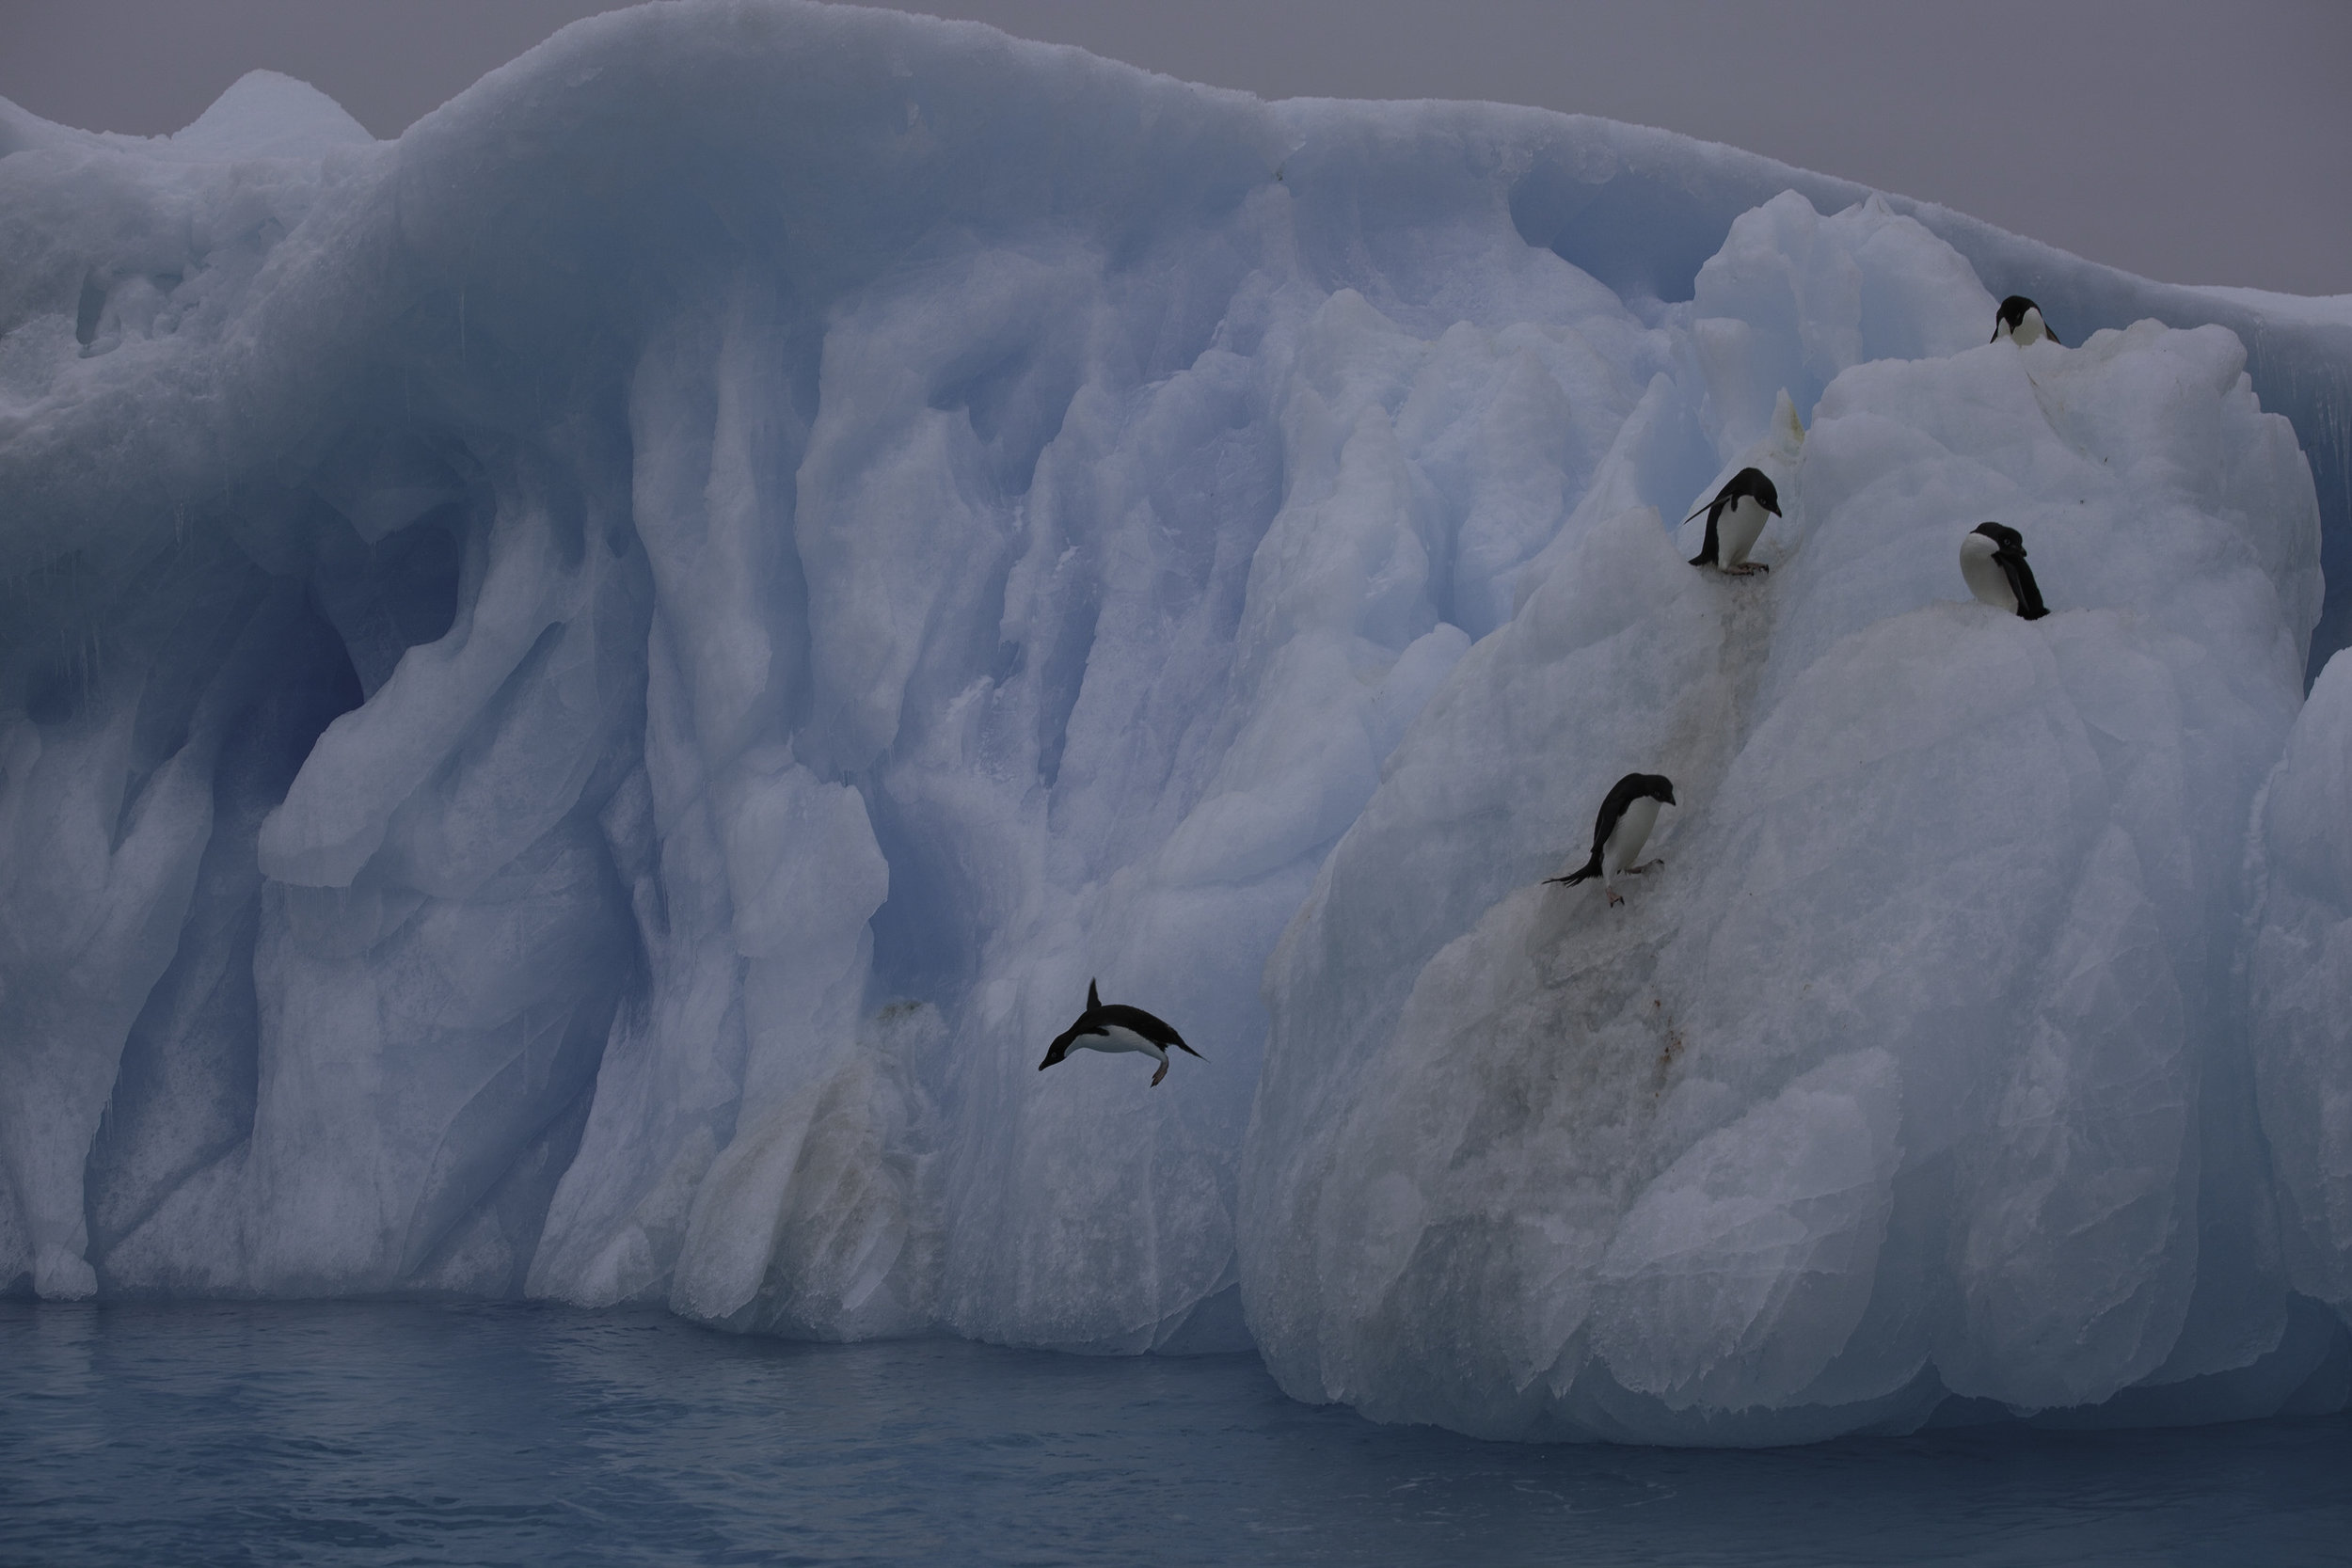 Adelie penguins taking a dive. Watching them climb up this rock hard ice by jumping out of the water and using only their feet is fairly impressive.